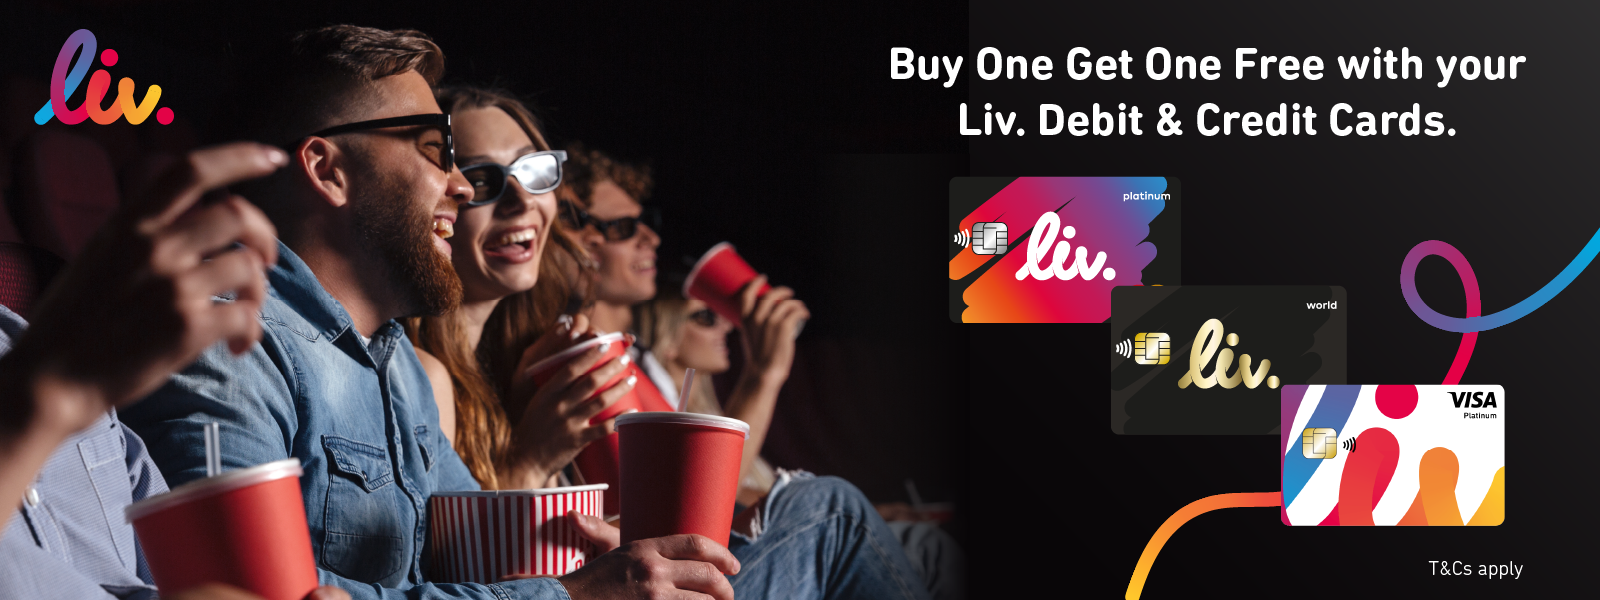 liv ticket offer